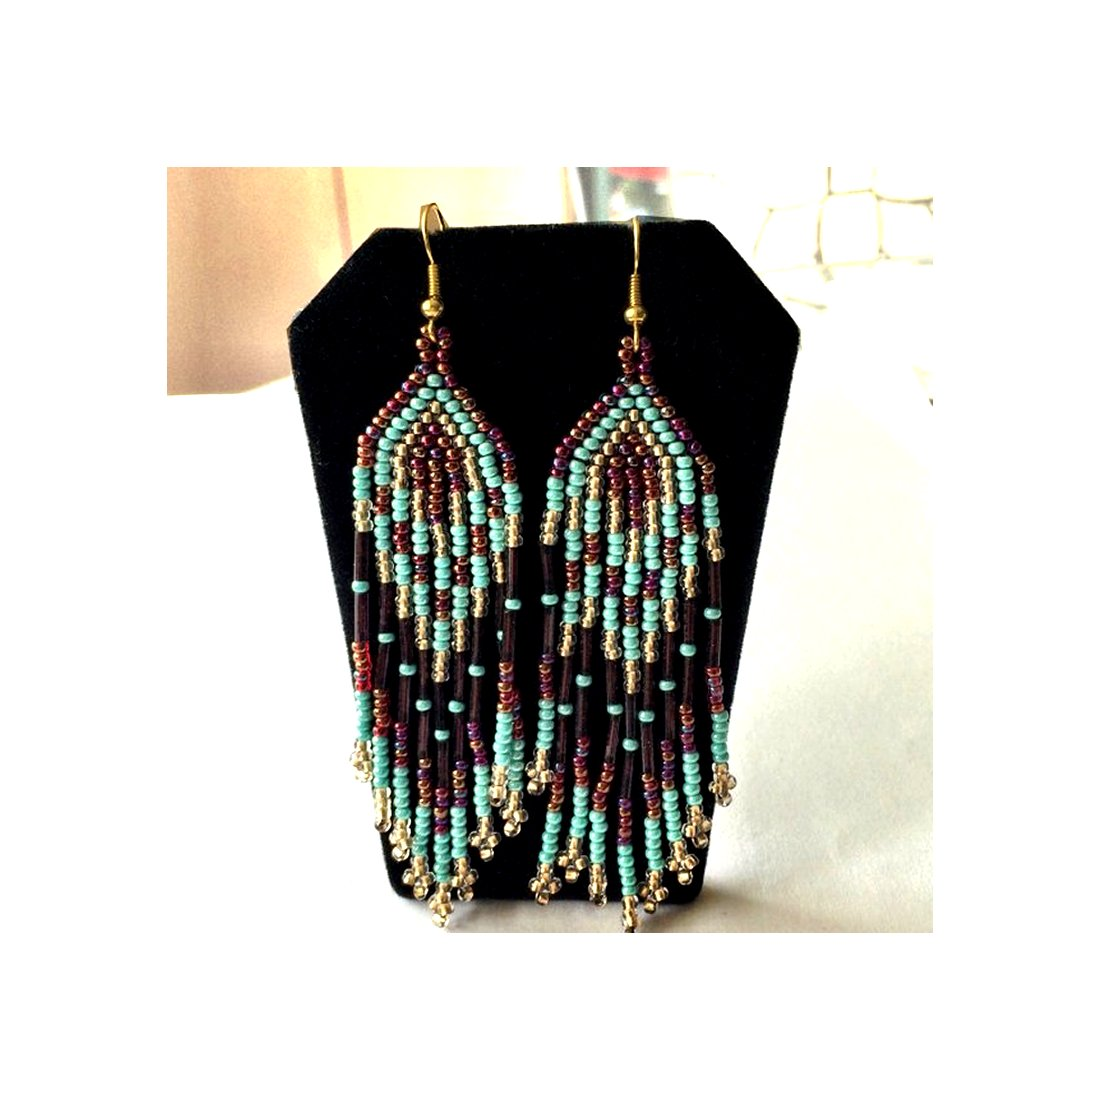 ON SALE Fringe Earrings. Long Indian Style beaded earring. Native American Beaded Earrings.  Hand Made in USA.